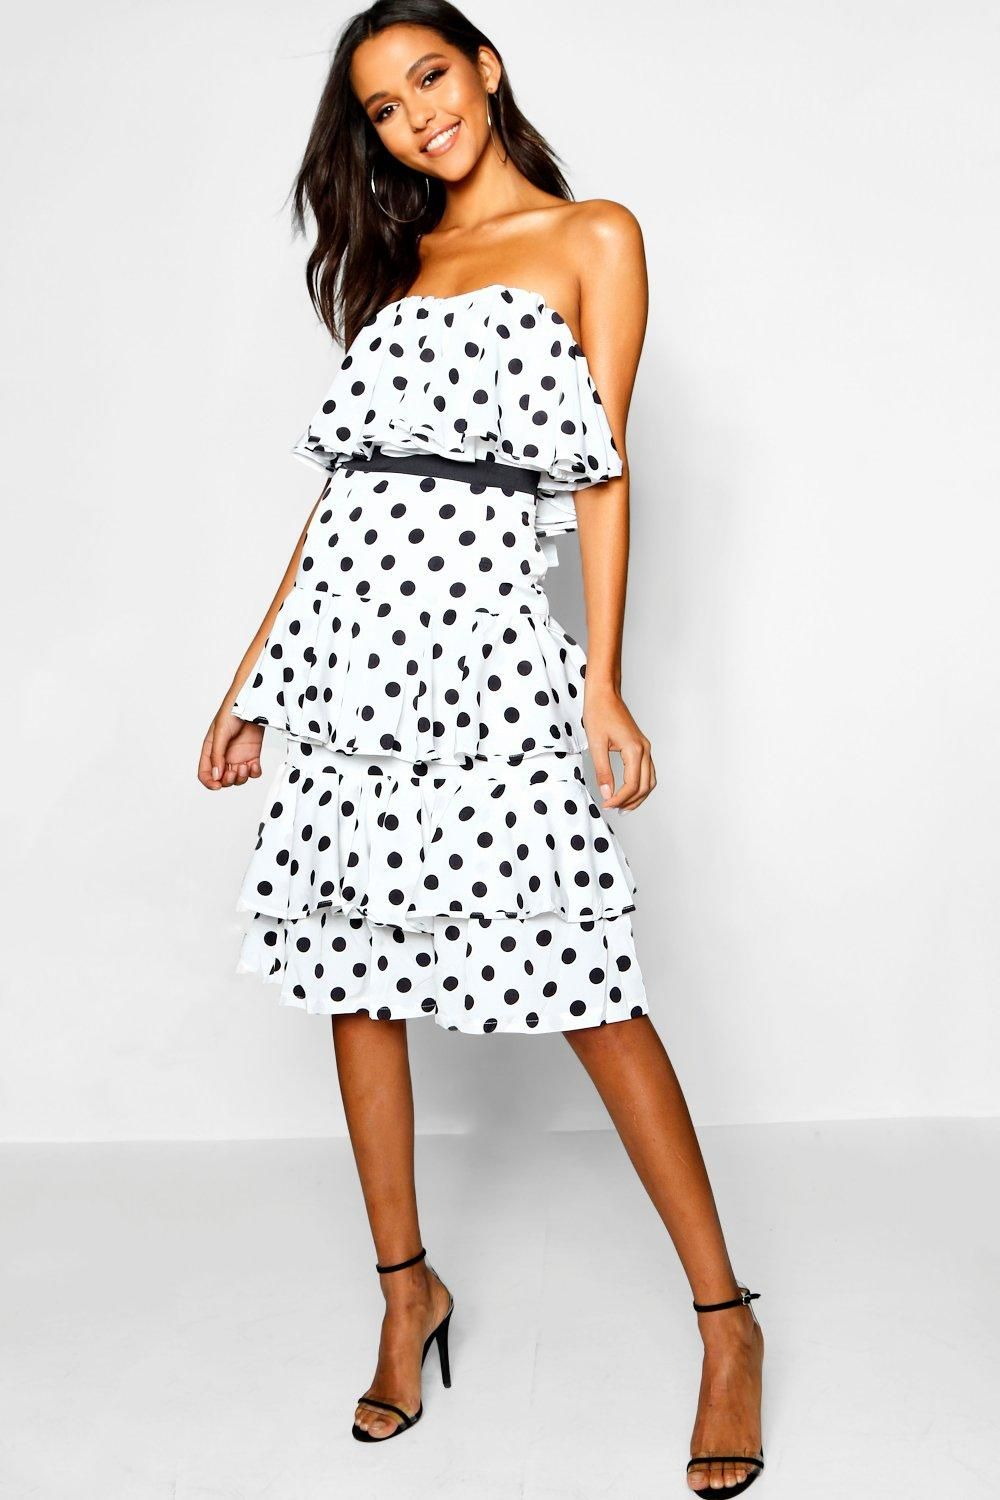 4e786e8073ee0 Dresses are the most-wanted wardrobe item for day-to-night dressing.